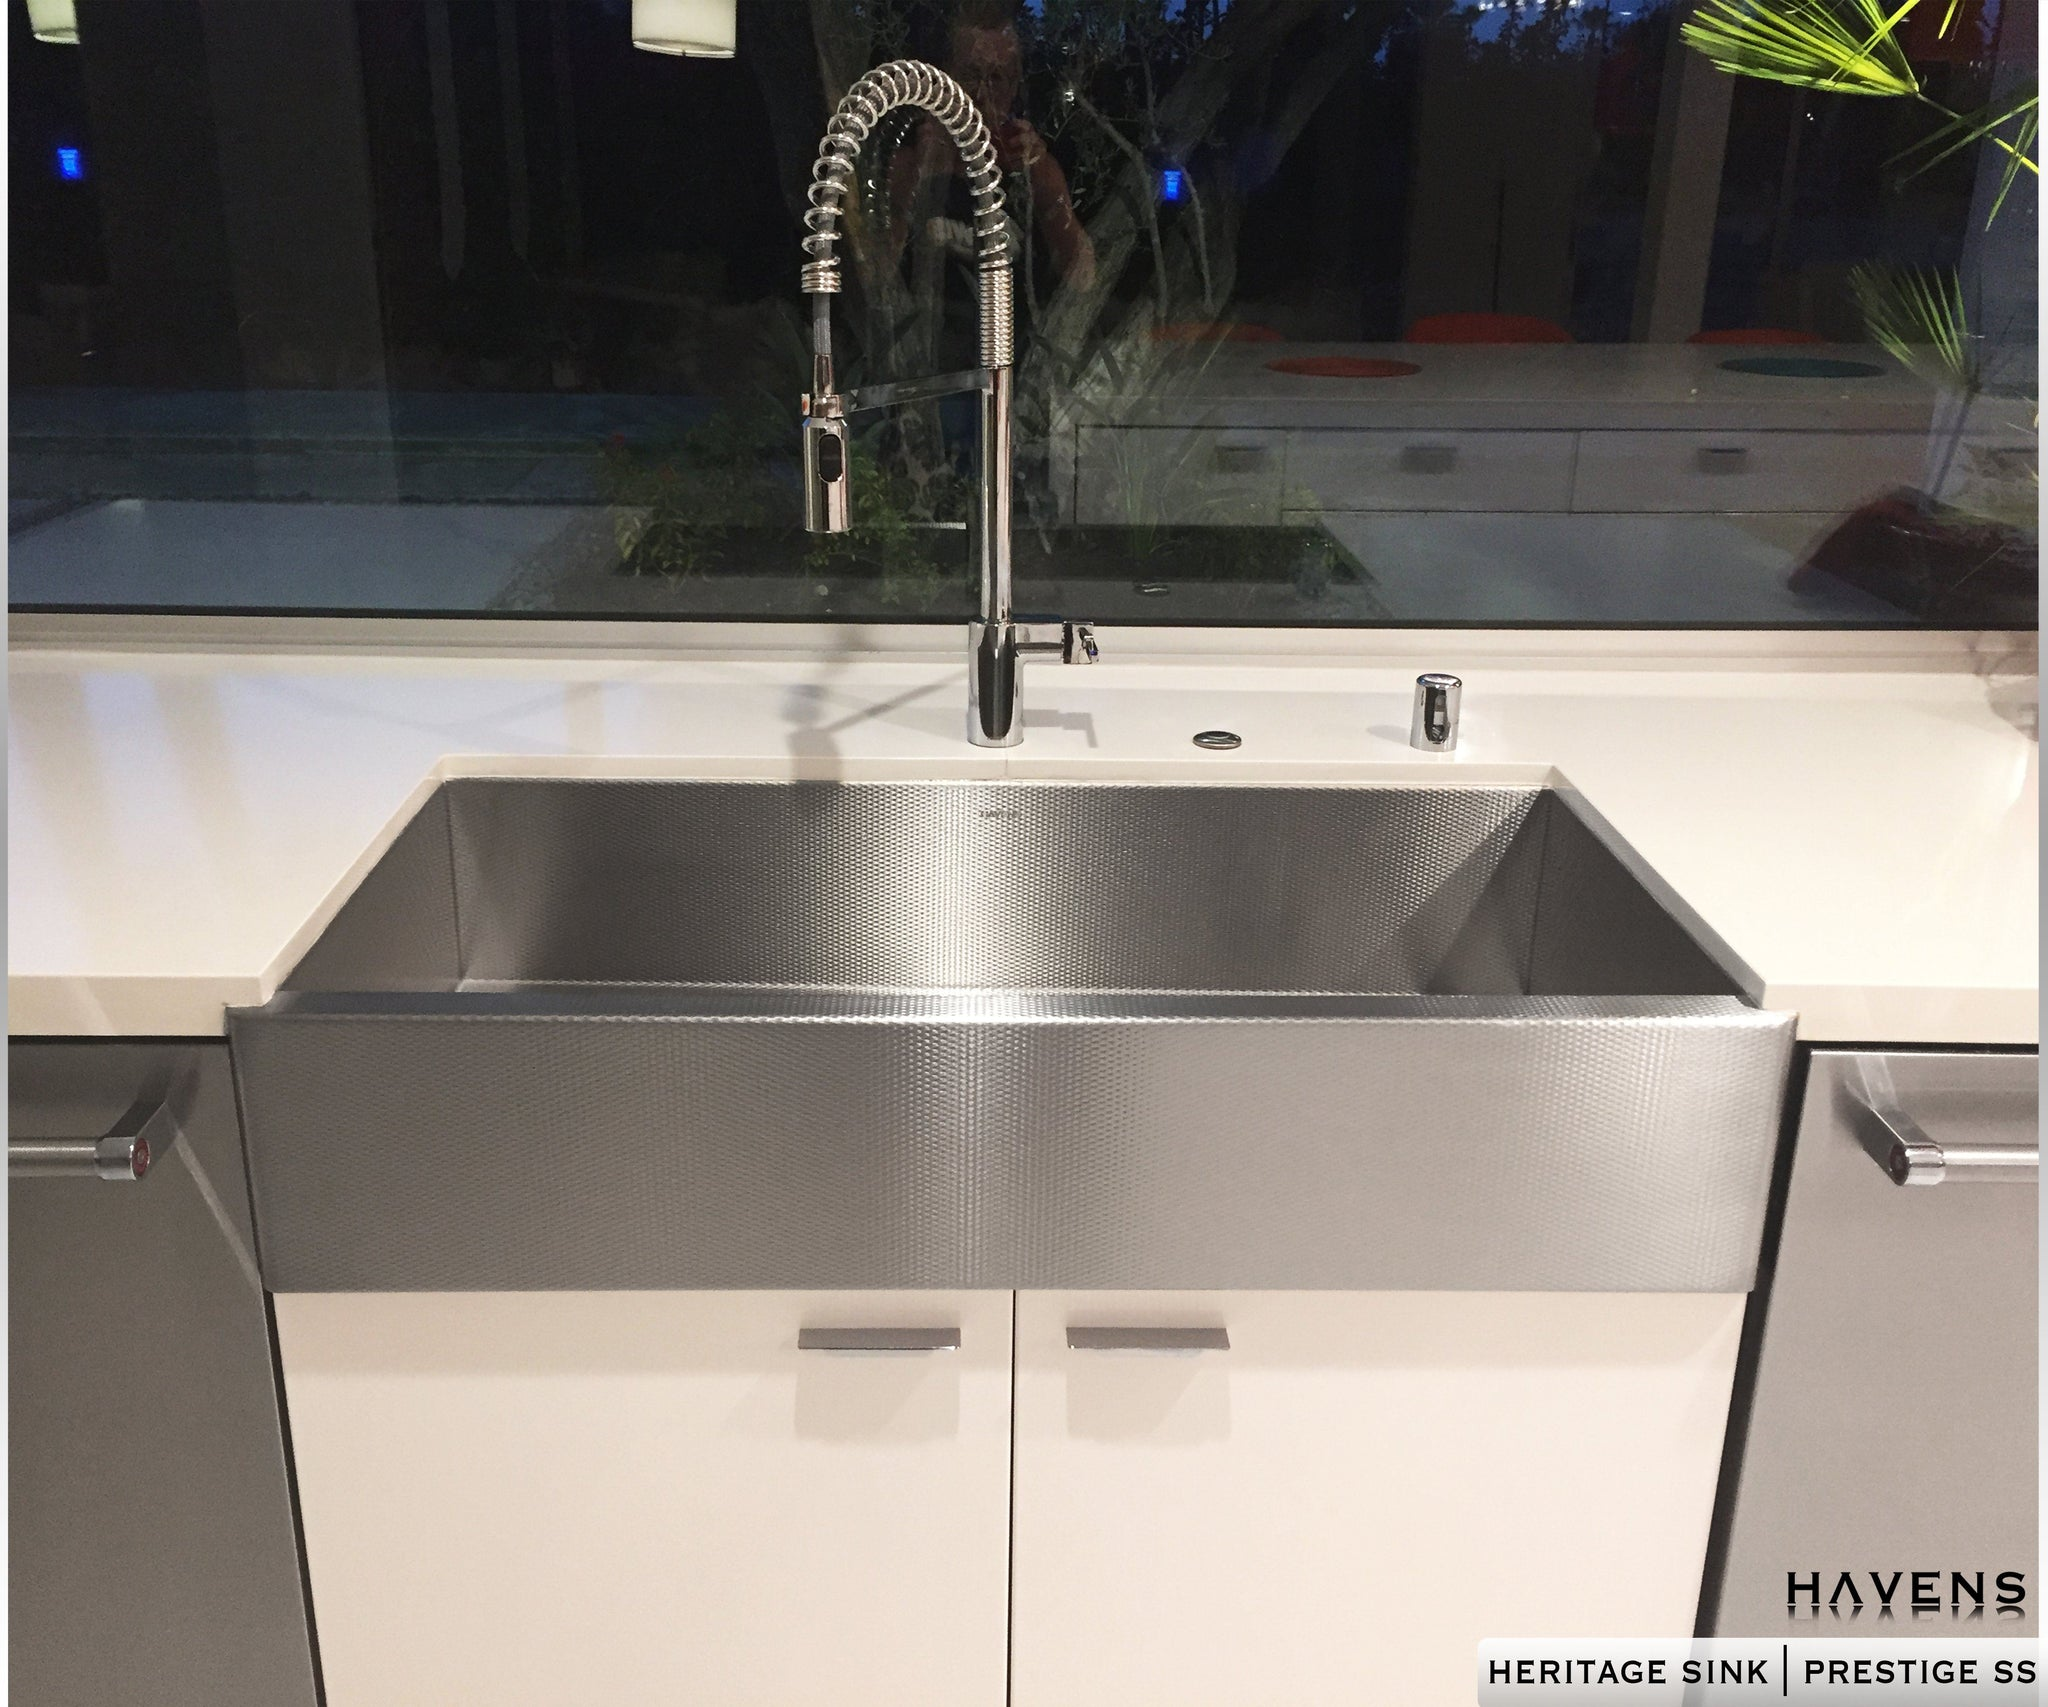 Textured stainless steel farmhouse style kitchen sink. Installed as an undermount, this stainless apron front sink is beautiful.